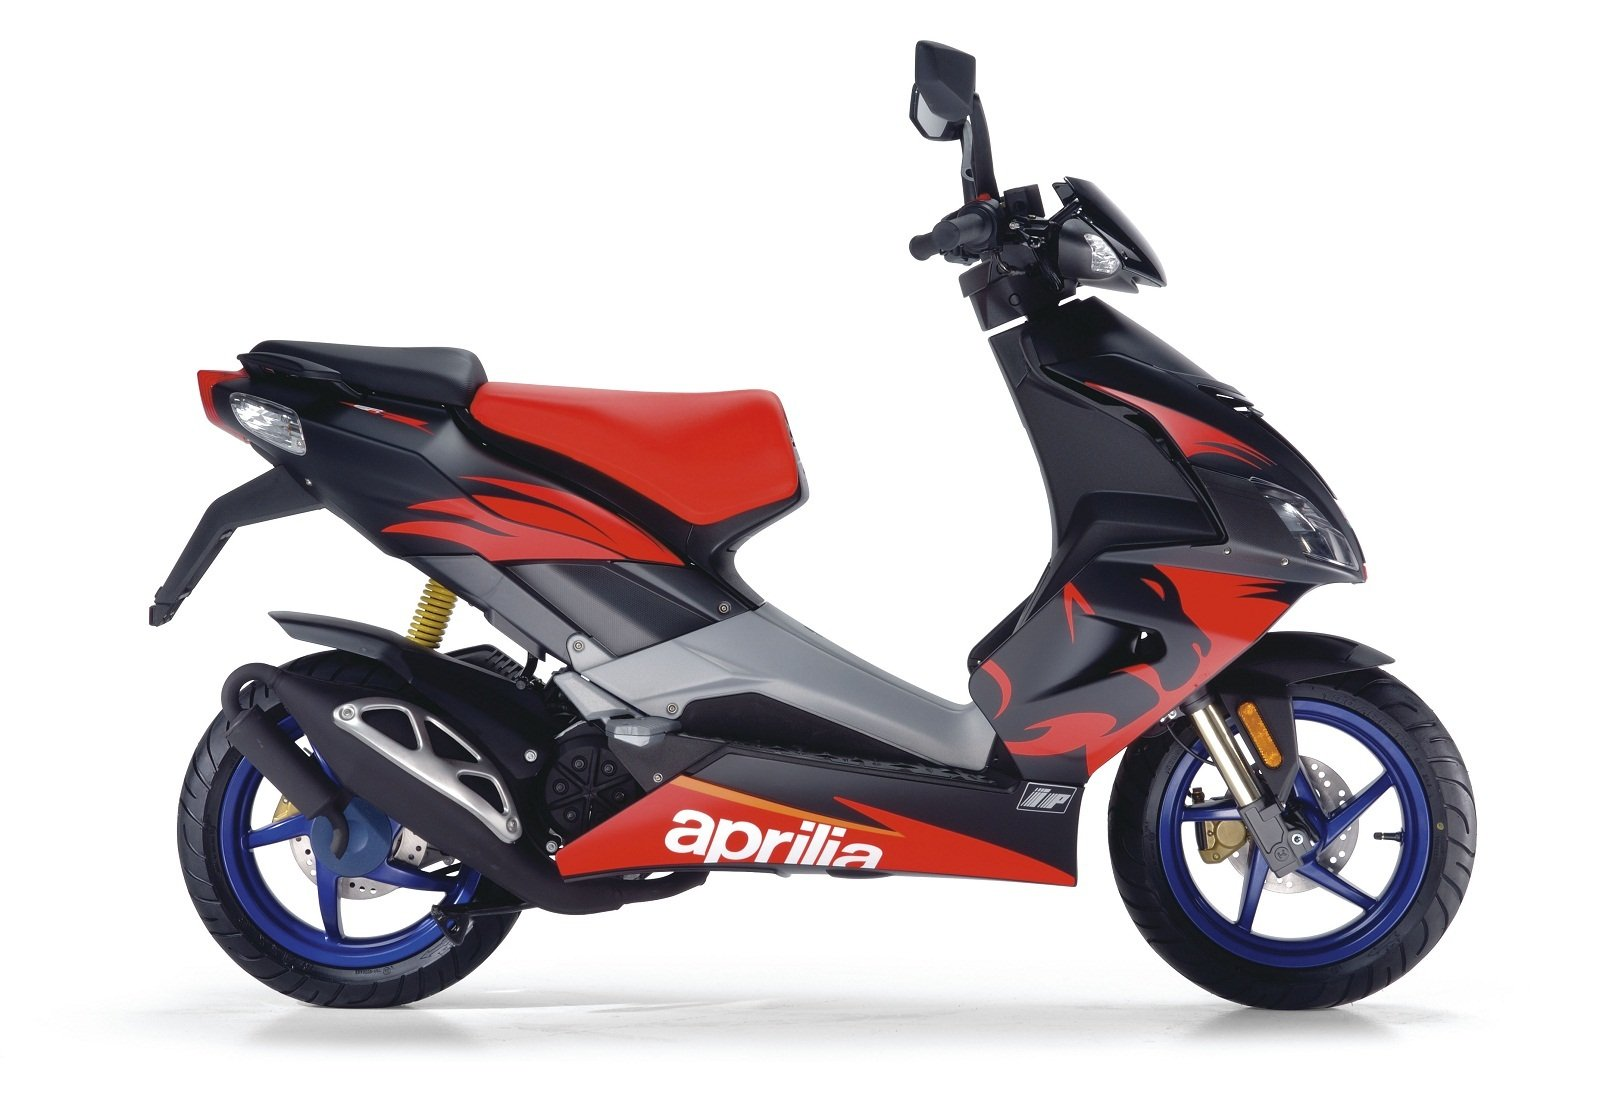 2012 aprilia sr 50 r picture 438875 motorcycle review top speed. Black Bedroom Furniture Sets. Home Design Ideas